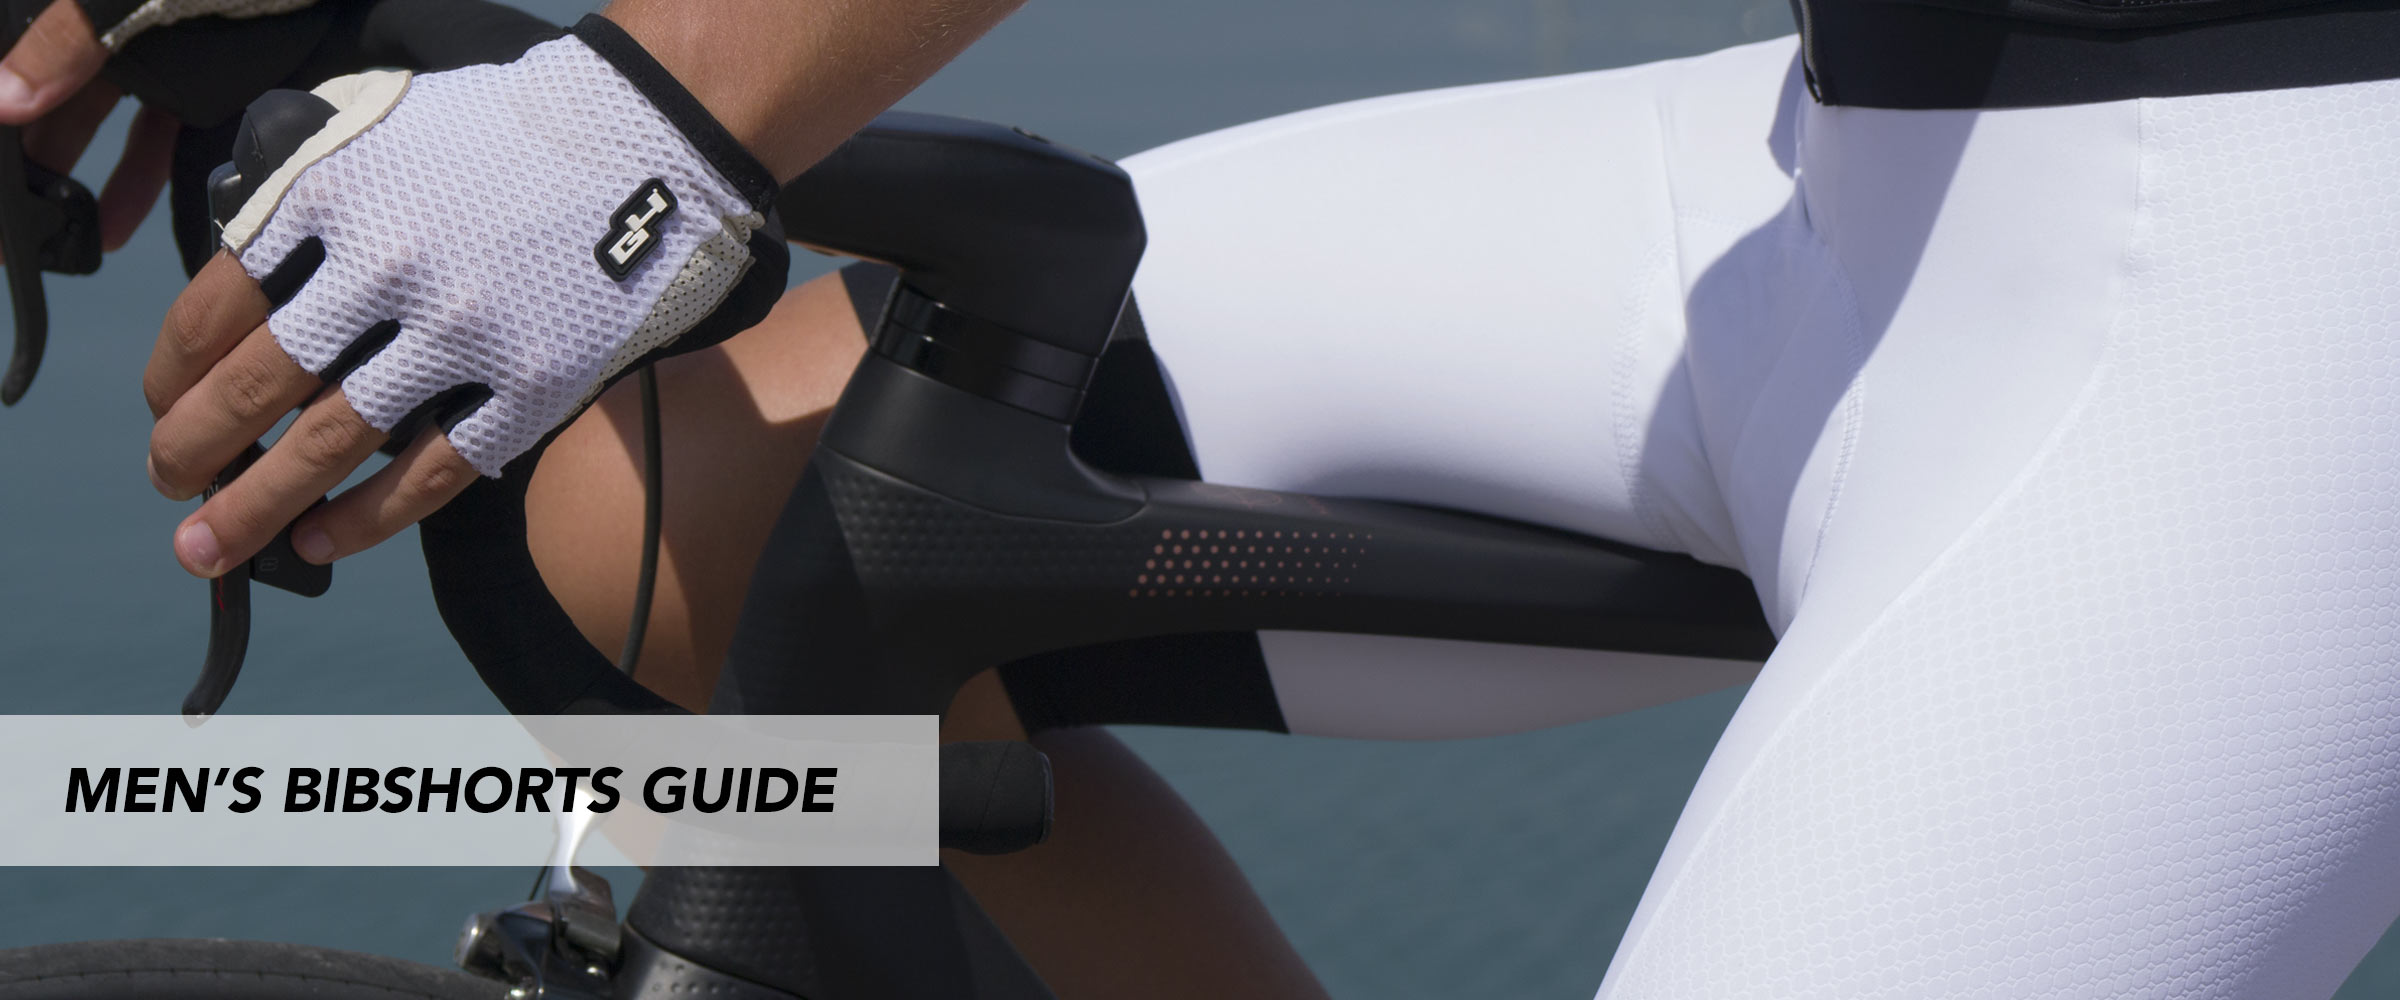 man cycling bibshort guide